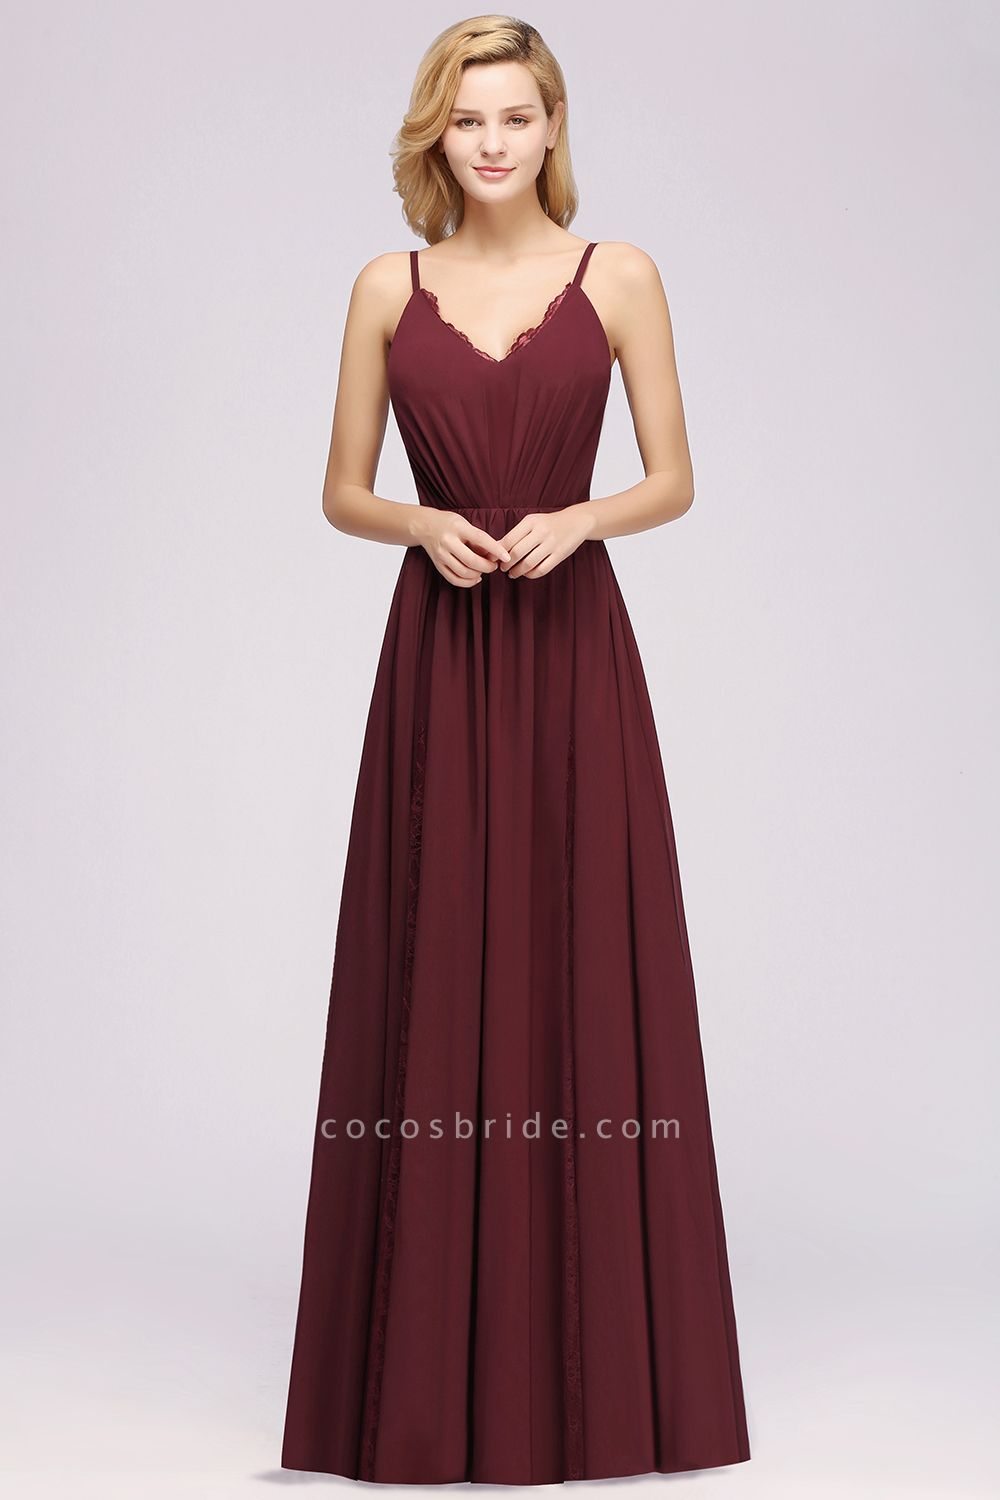 BM0213 A-Line Chiffon V-Neck Spaghetti Straps Long Bridesmaid Dress